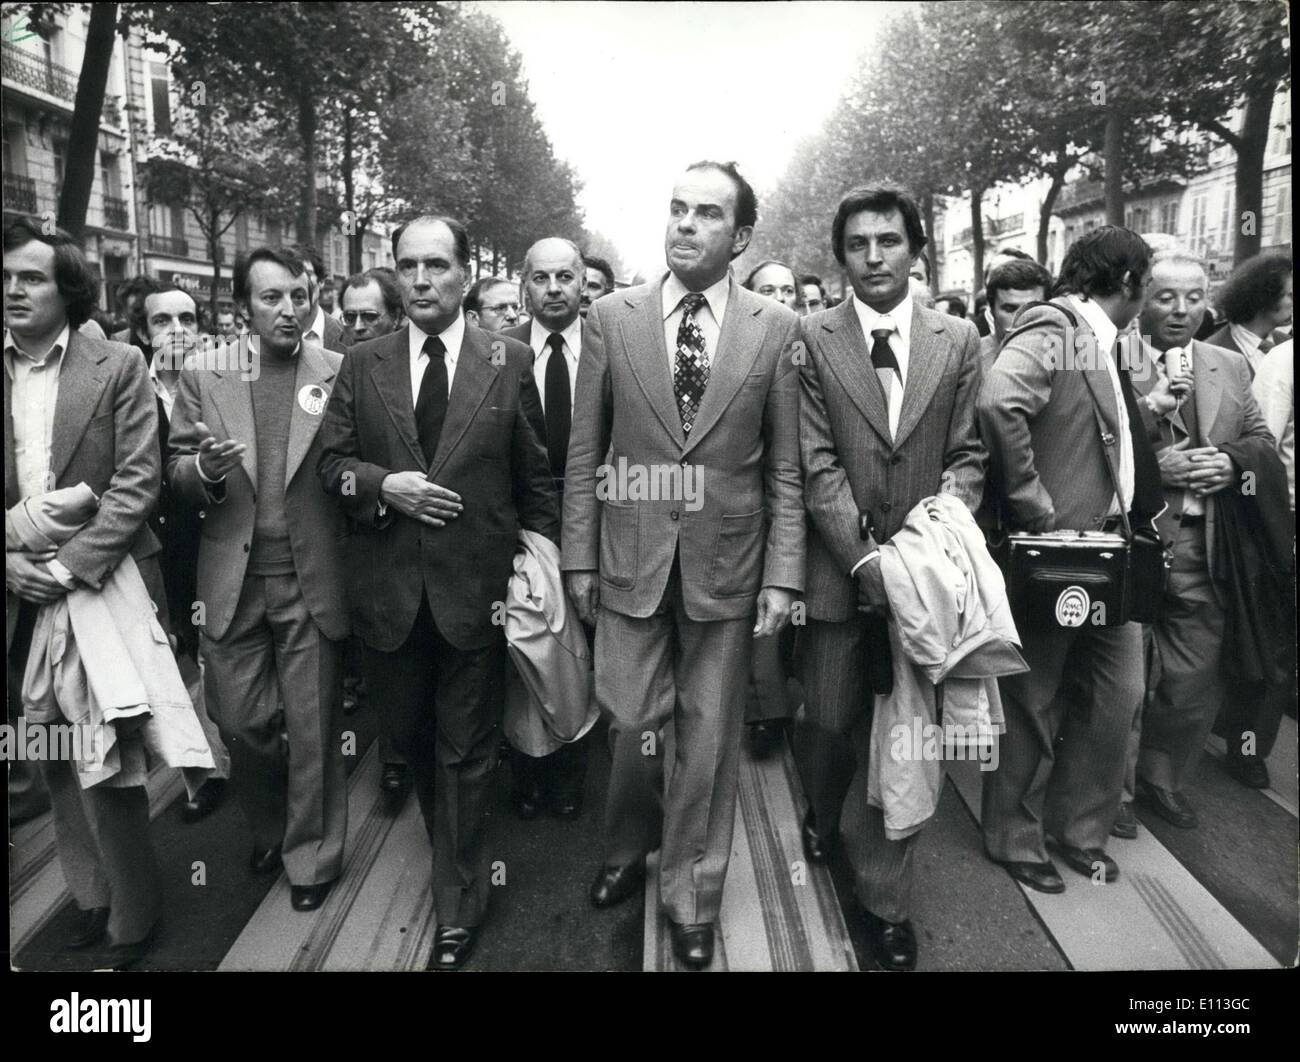 Sep. 30, 1975 - Called upon by unions and Leftist organizations, millions of Parisians participated in an anti-Franco demonstration that occurred last night from La Republique to La Bastille. - Stock Image